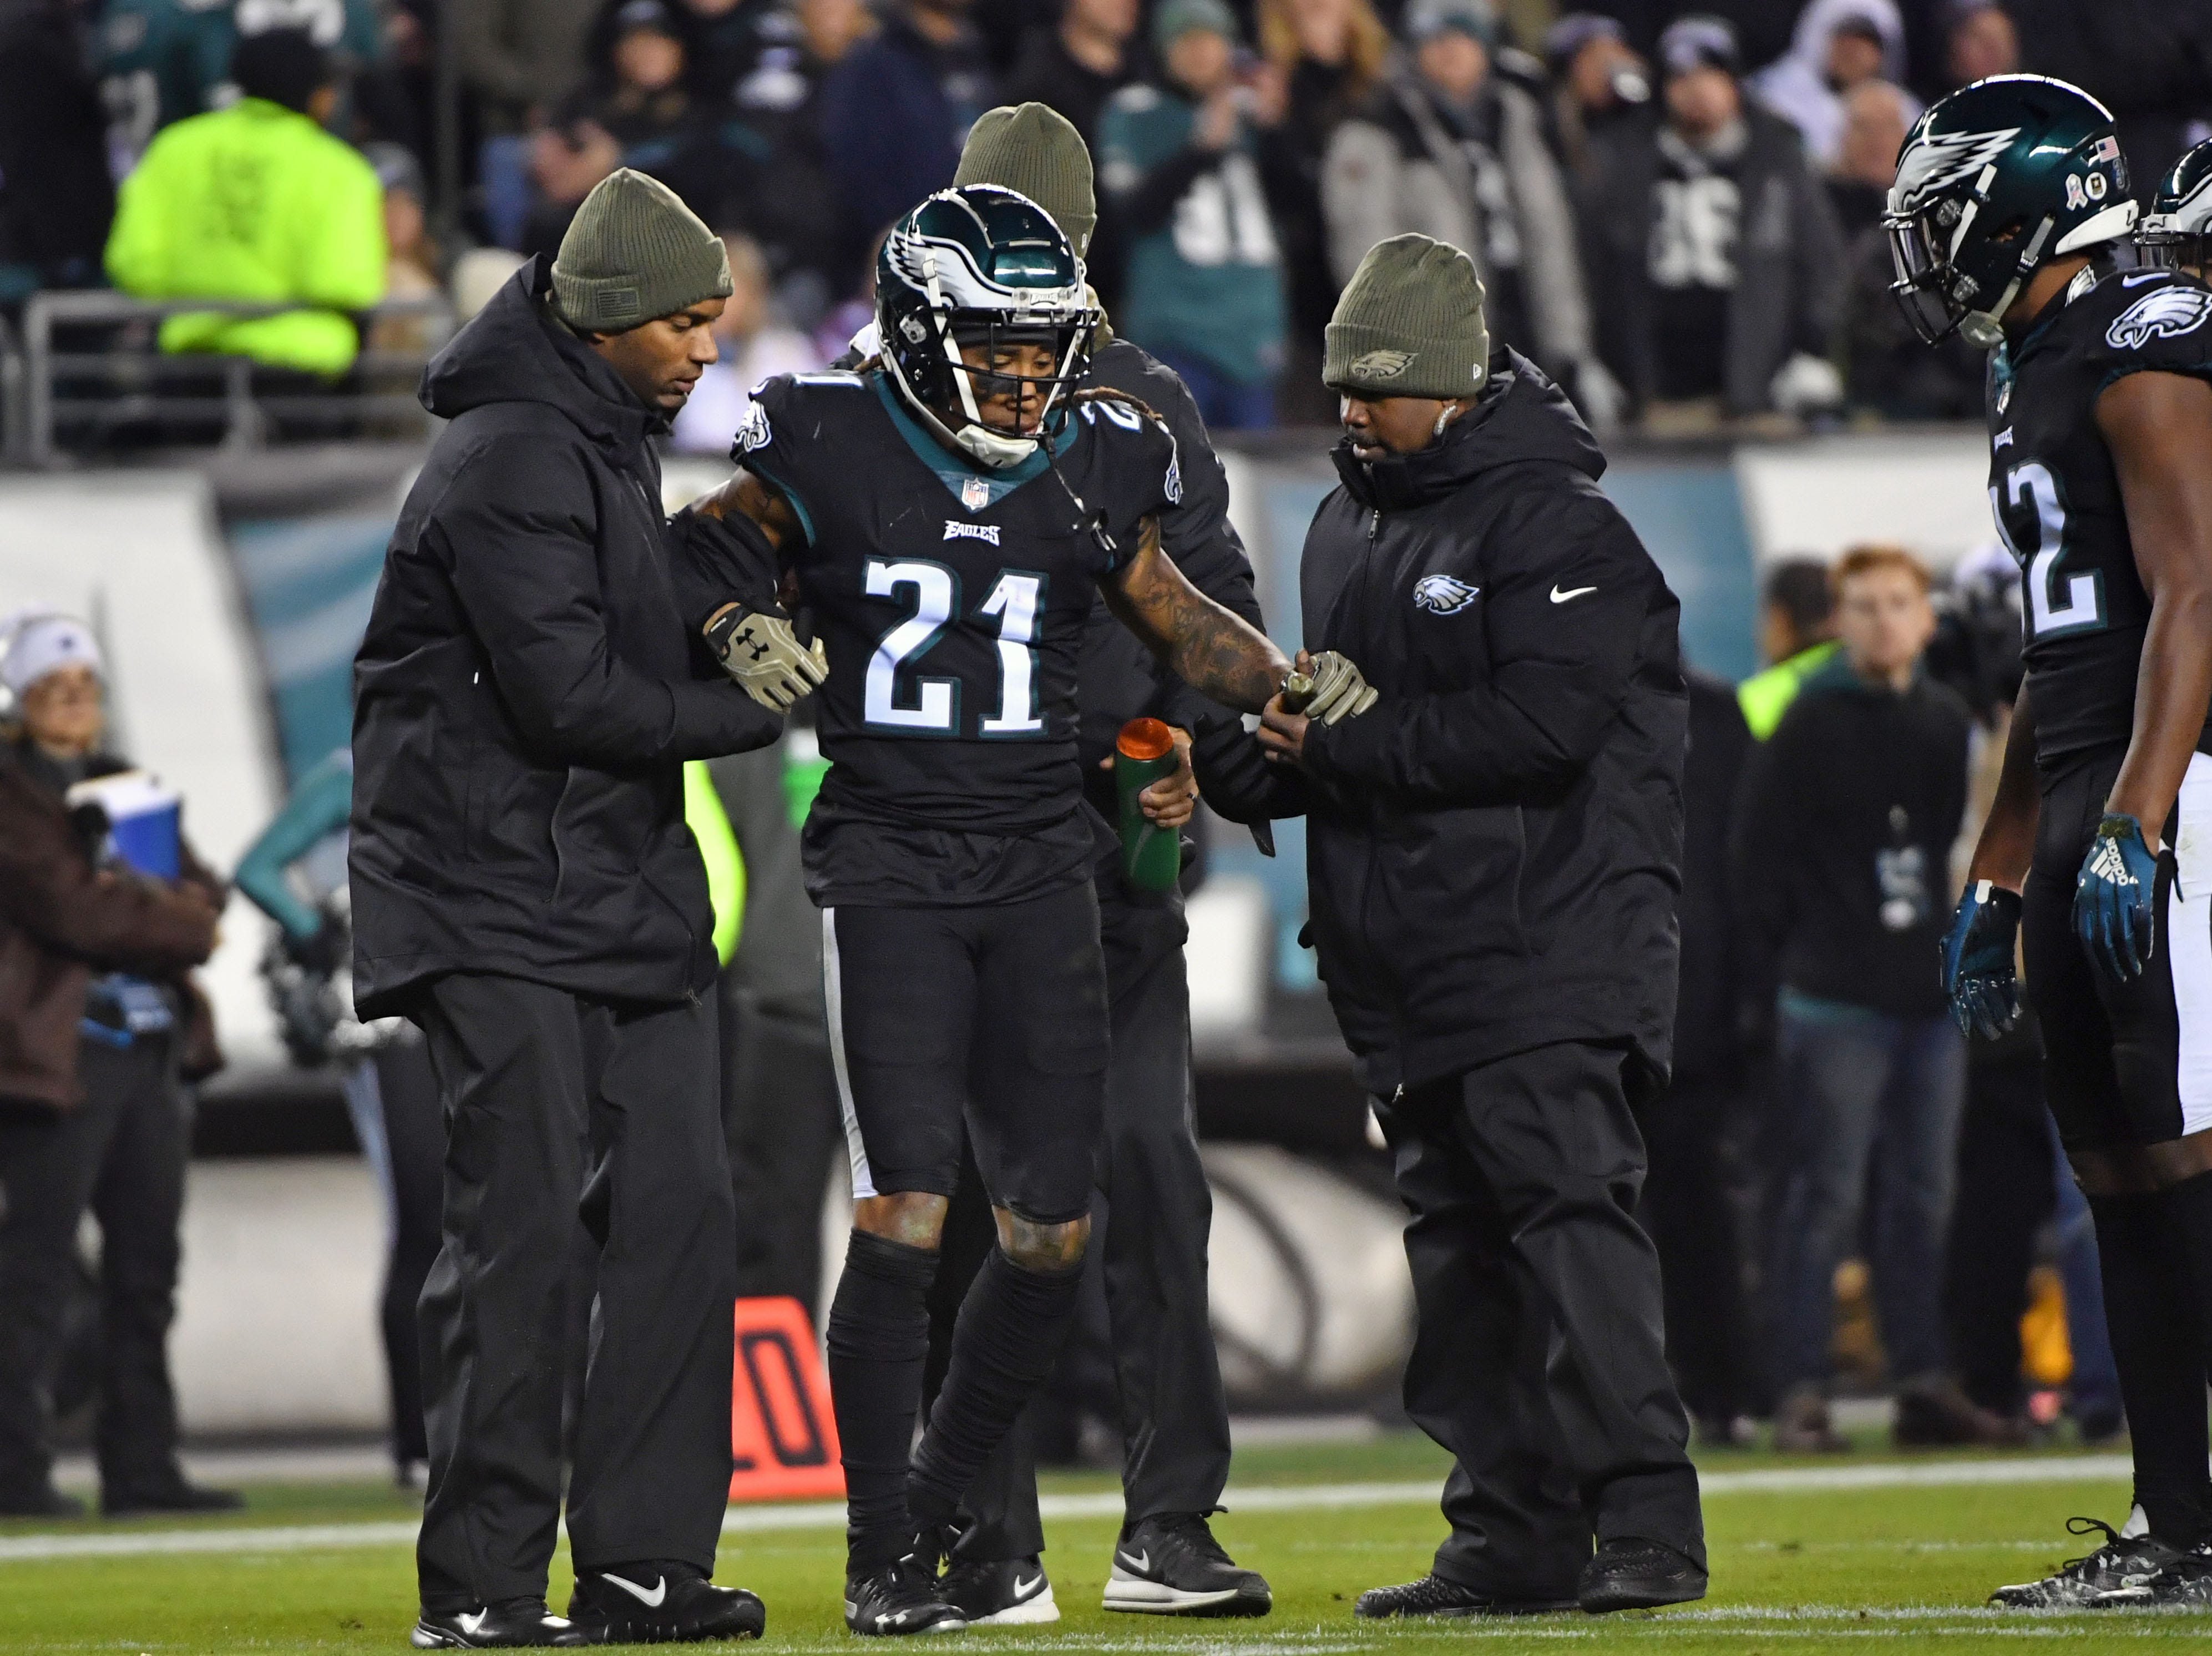 Ronald Darby, CB, Philadelphia Eagles (torn ACL, out for season)